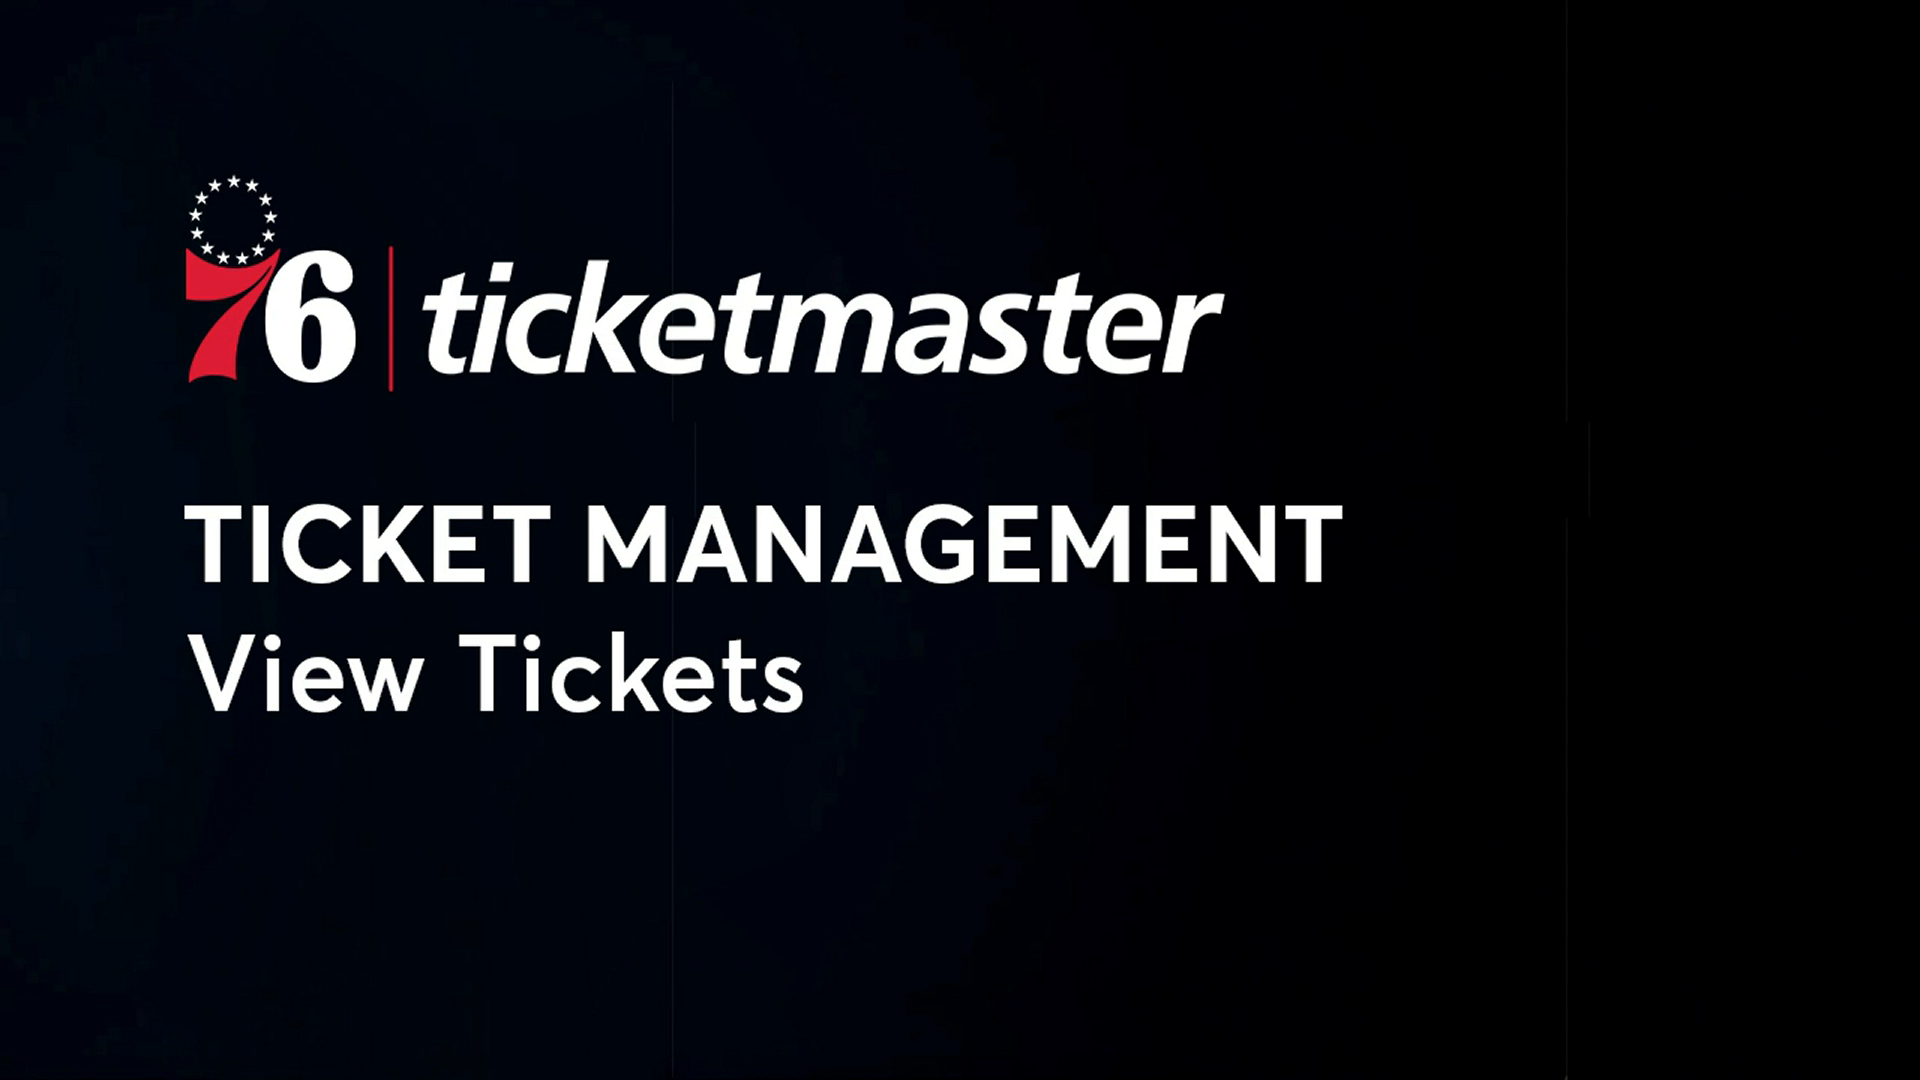 How Do I View Tickets on Ticketmaster?